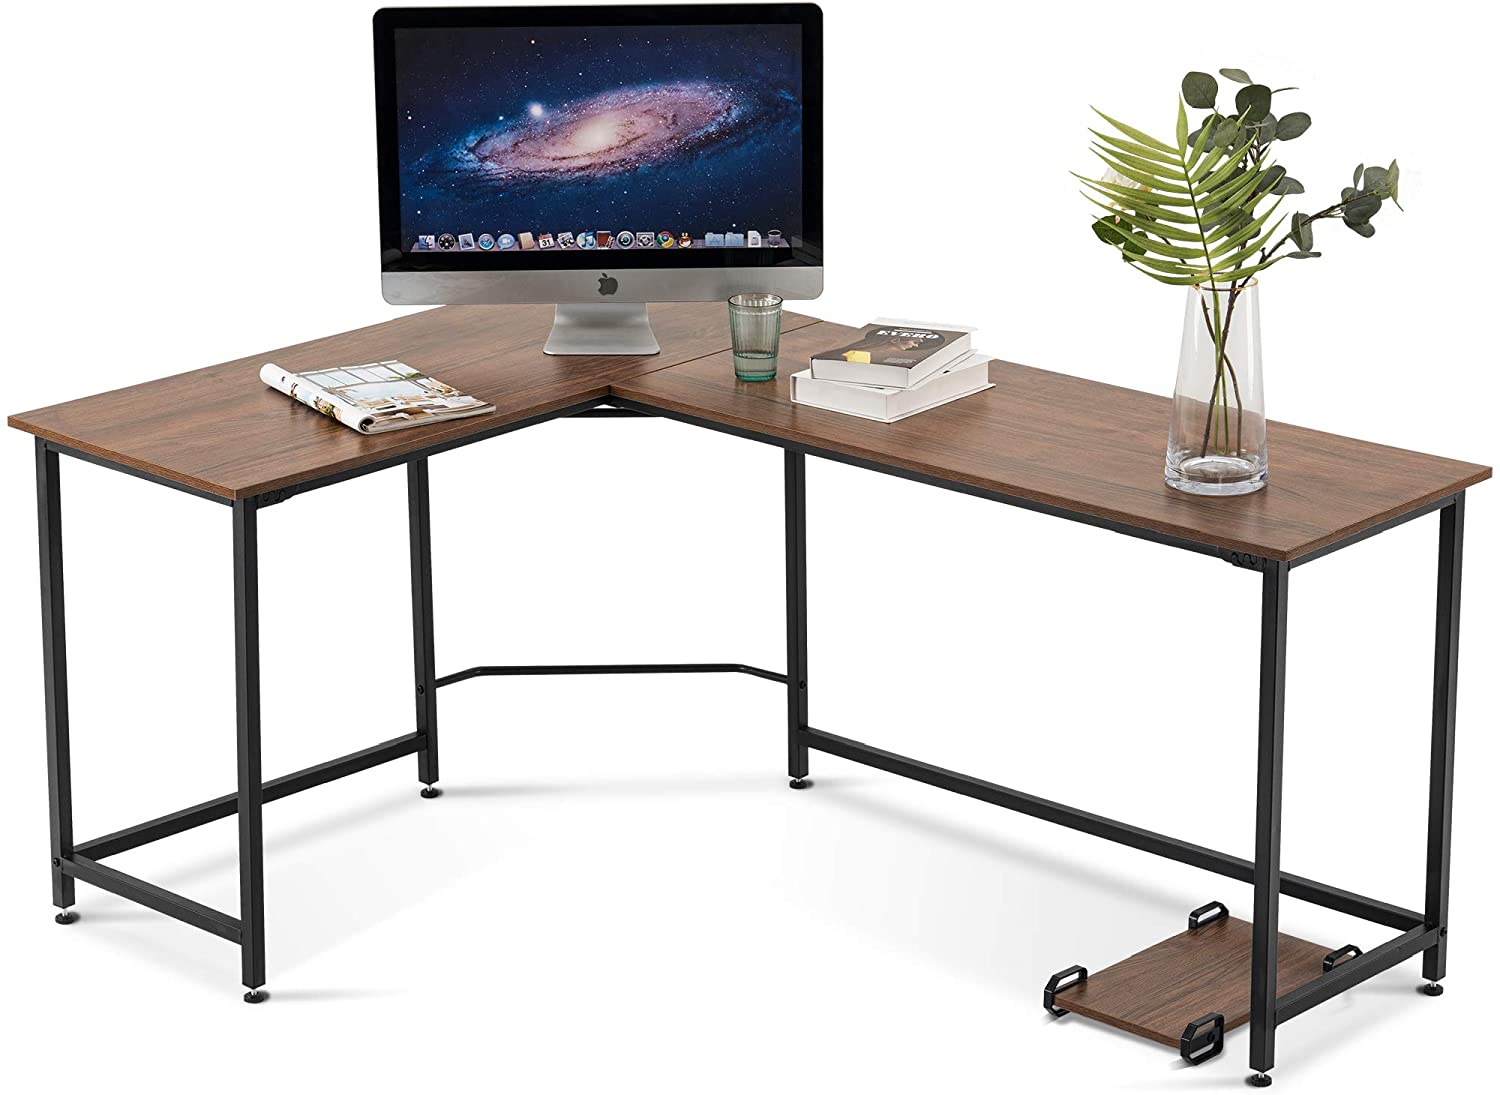 Ivinta L Shaped Desk Corner Desk Gaming Desk Pc Table Writing Workstation Simplest Modern Computer Desk For Home Office Small Space Brown Walmart Com Walmart Com